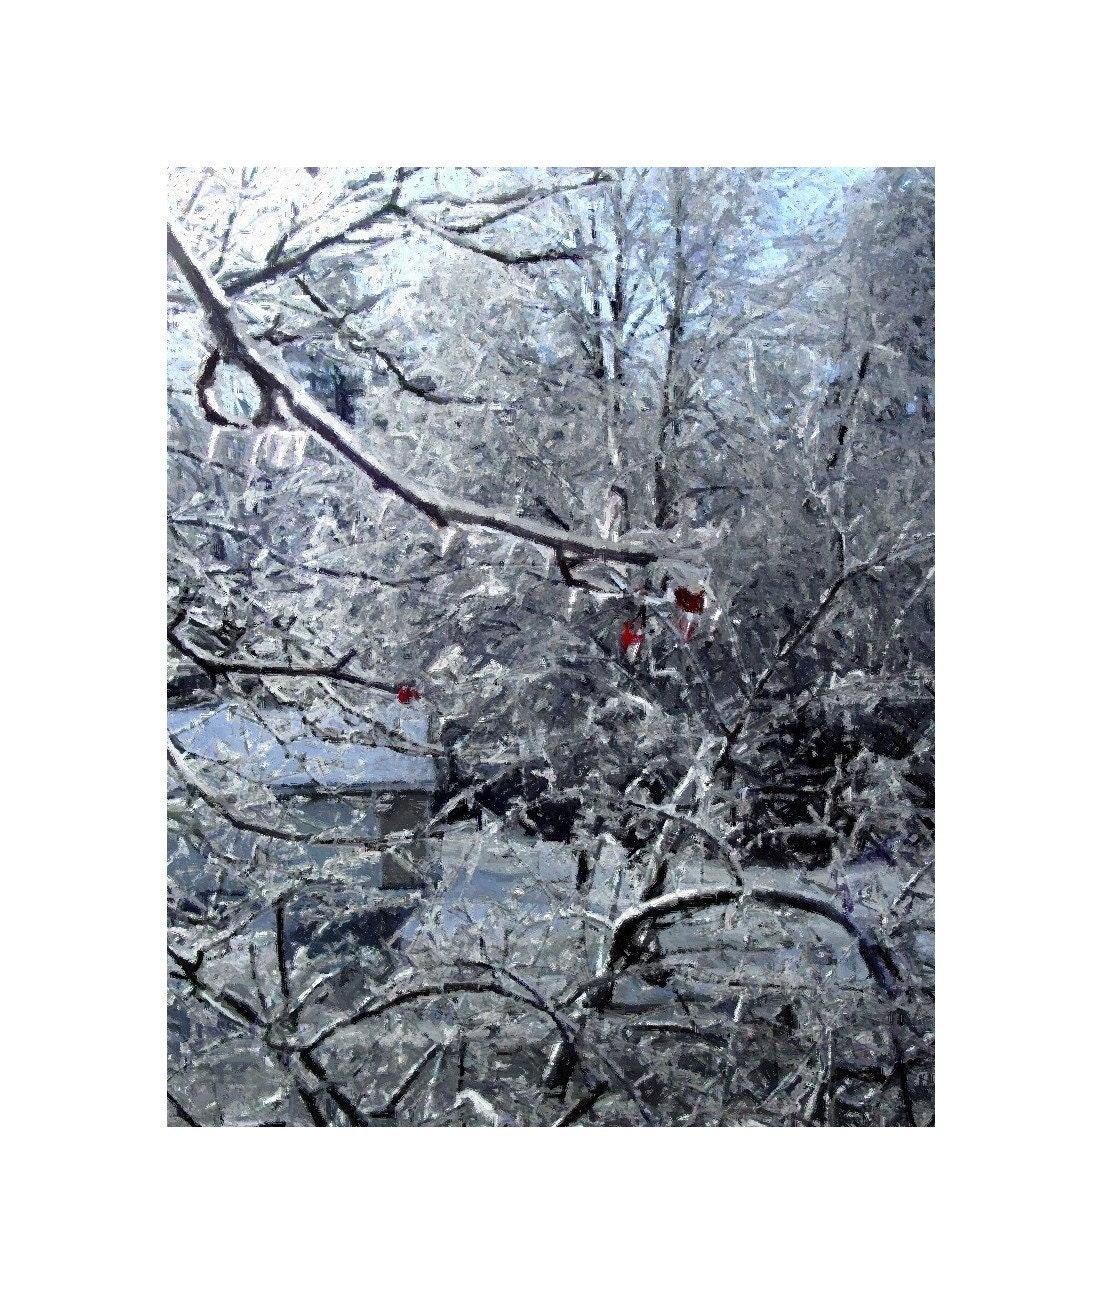 Maine Winter Ice Storm, 8 x 10, Painted Photograph, Three Red Berries In the Frozen Trees, Portland, Maine, Winter, The Maine View